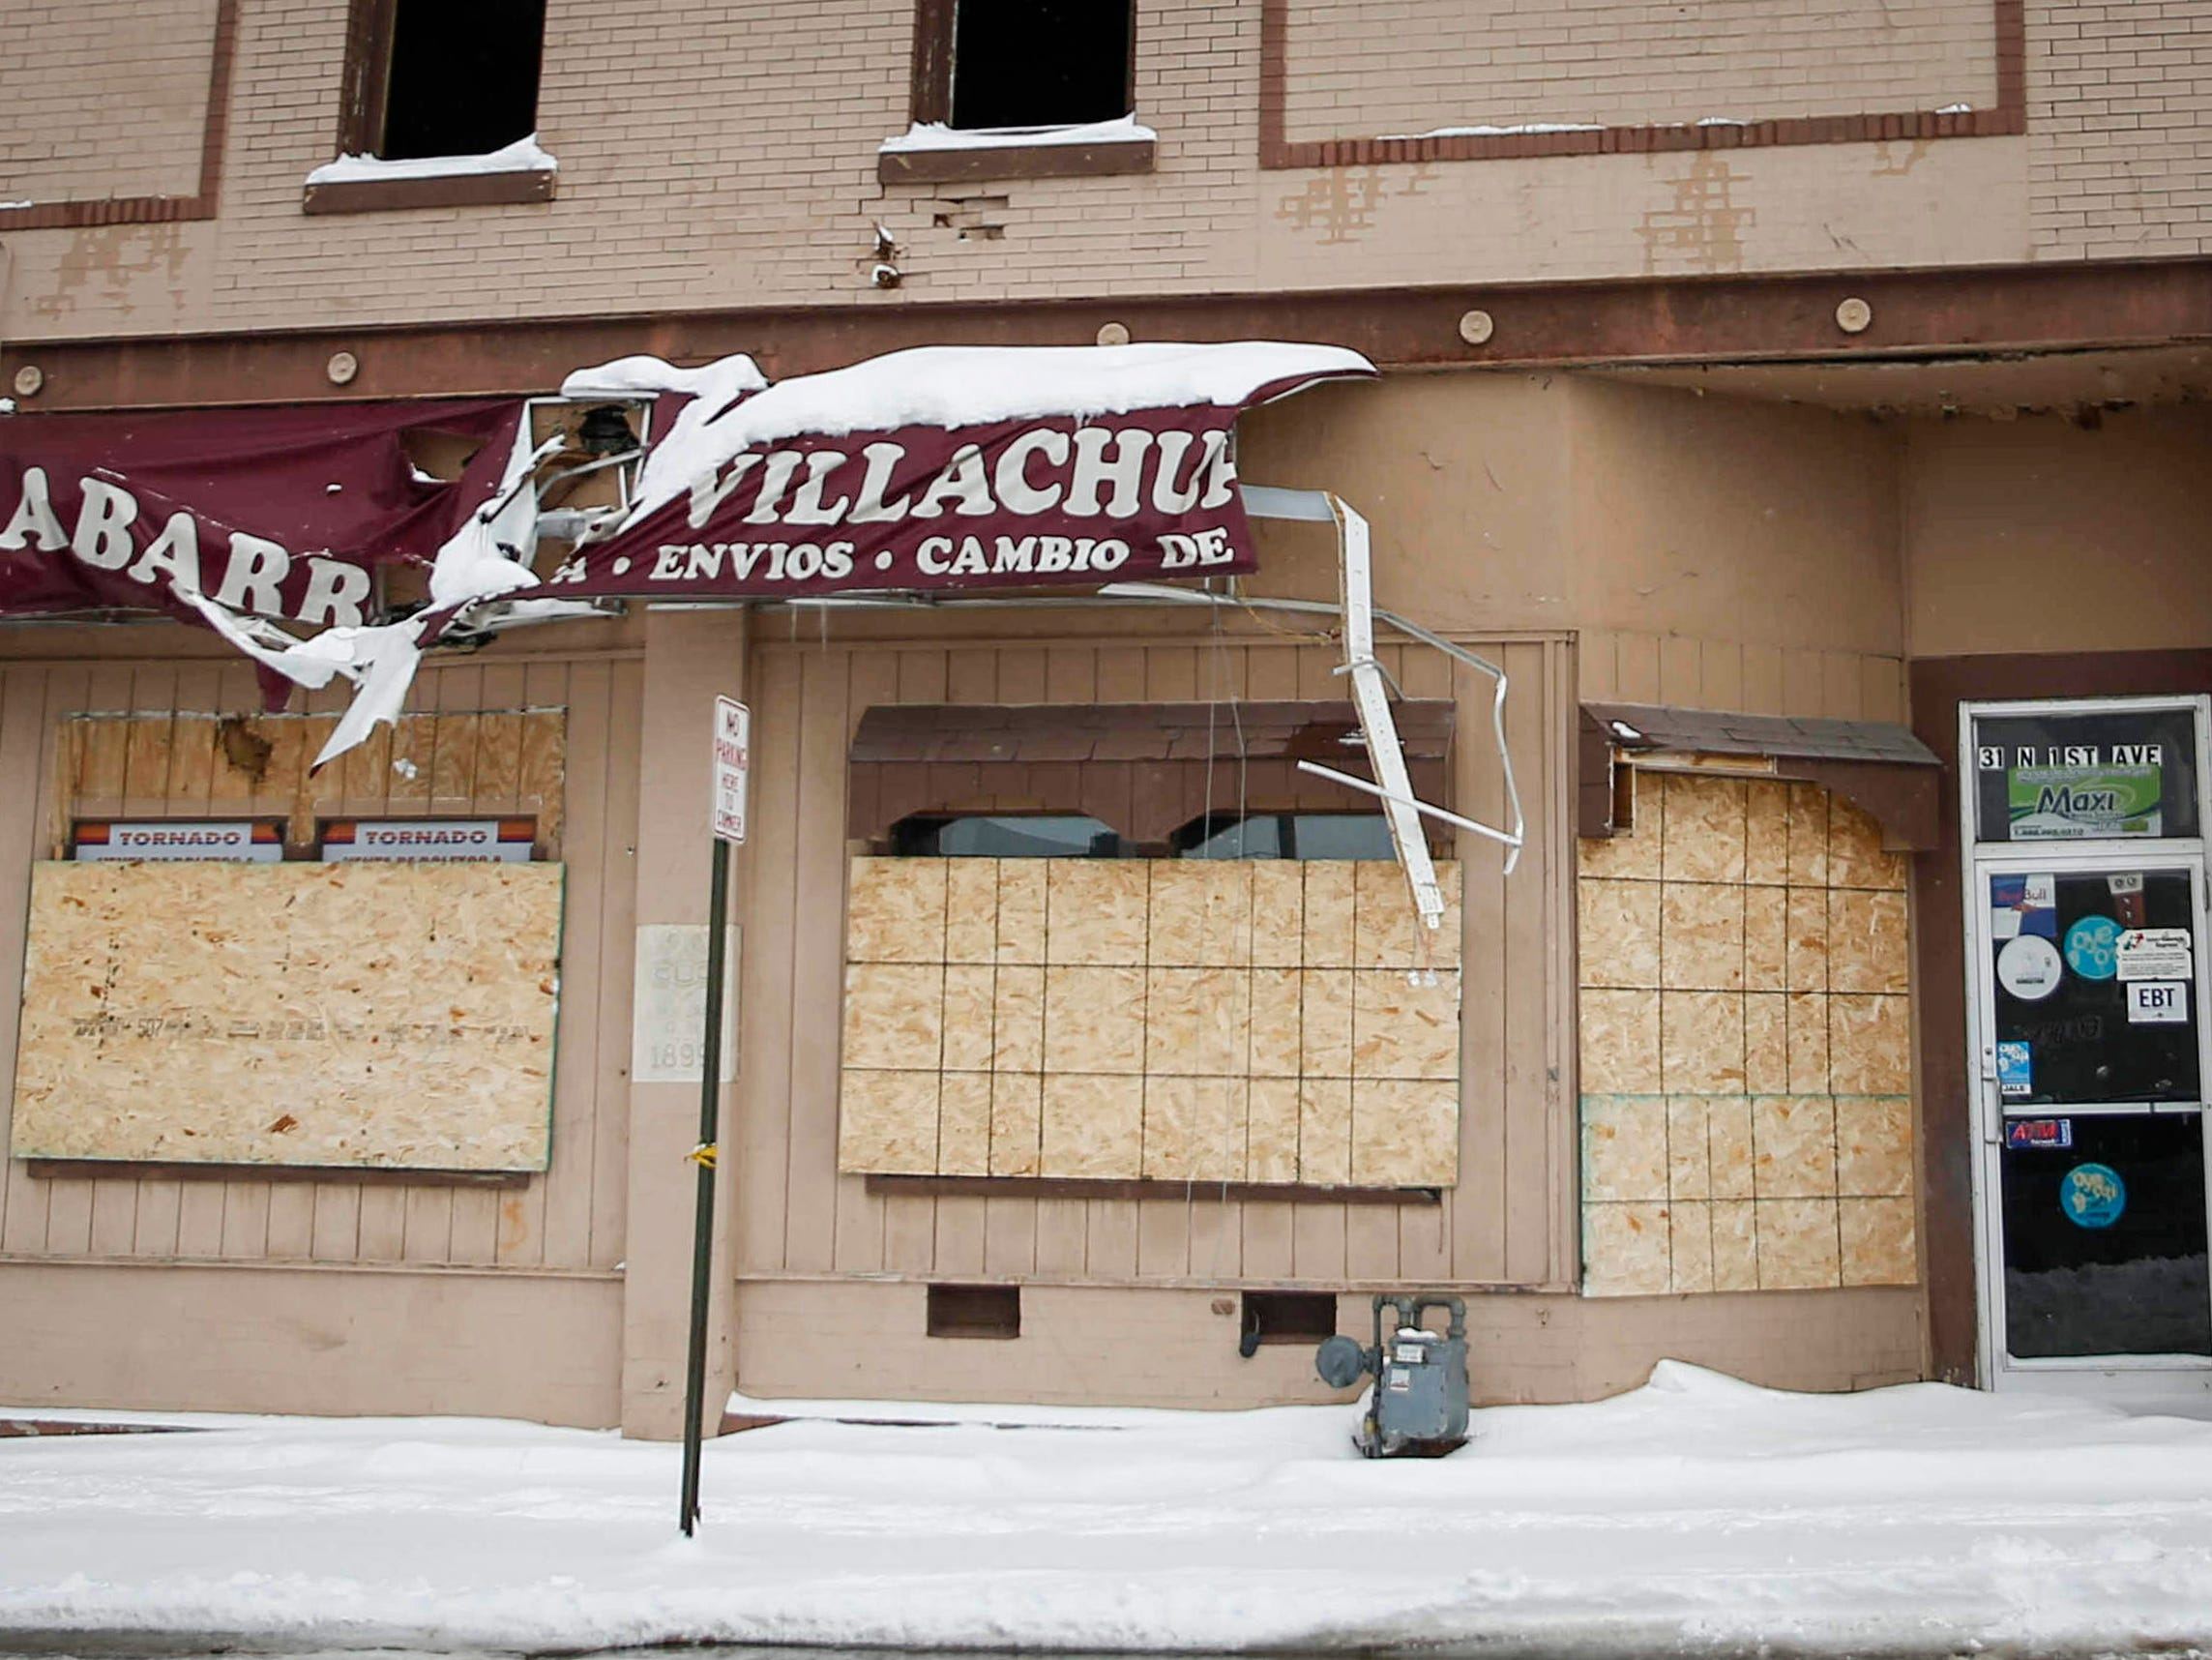 Work continues on this Mexican restaurant in Marshalltown more than half a year after an EF-3 tornado ripped across downtown, toppling foundations and causing more than $1 million in property damage.